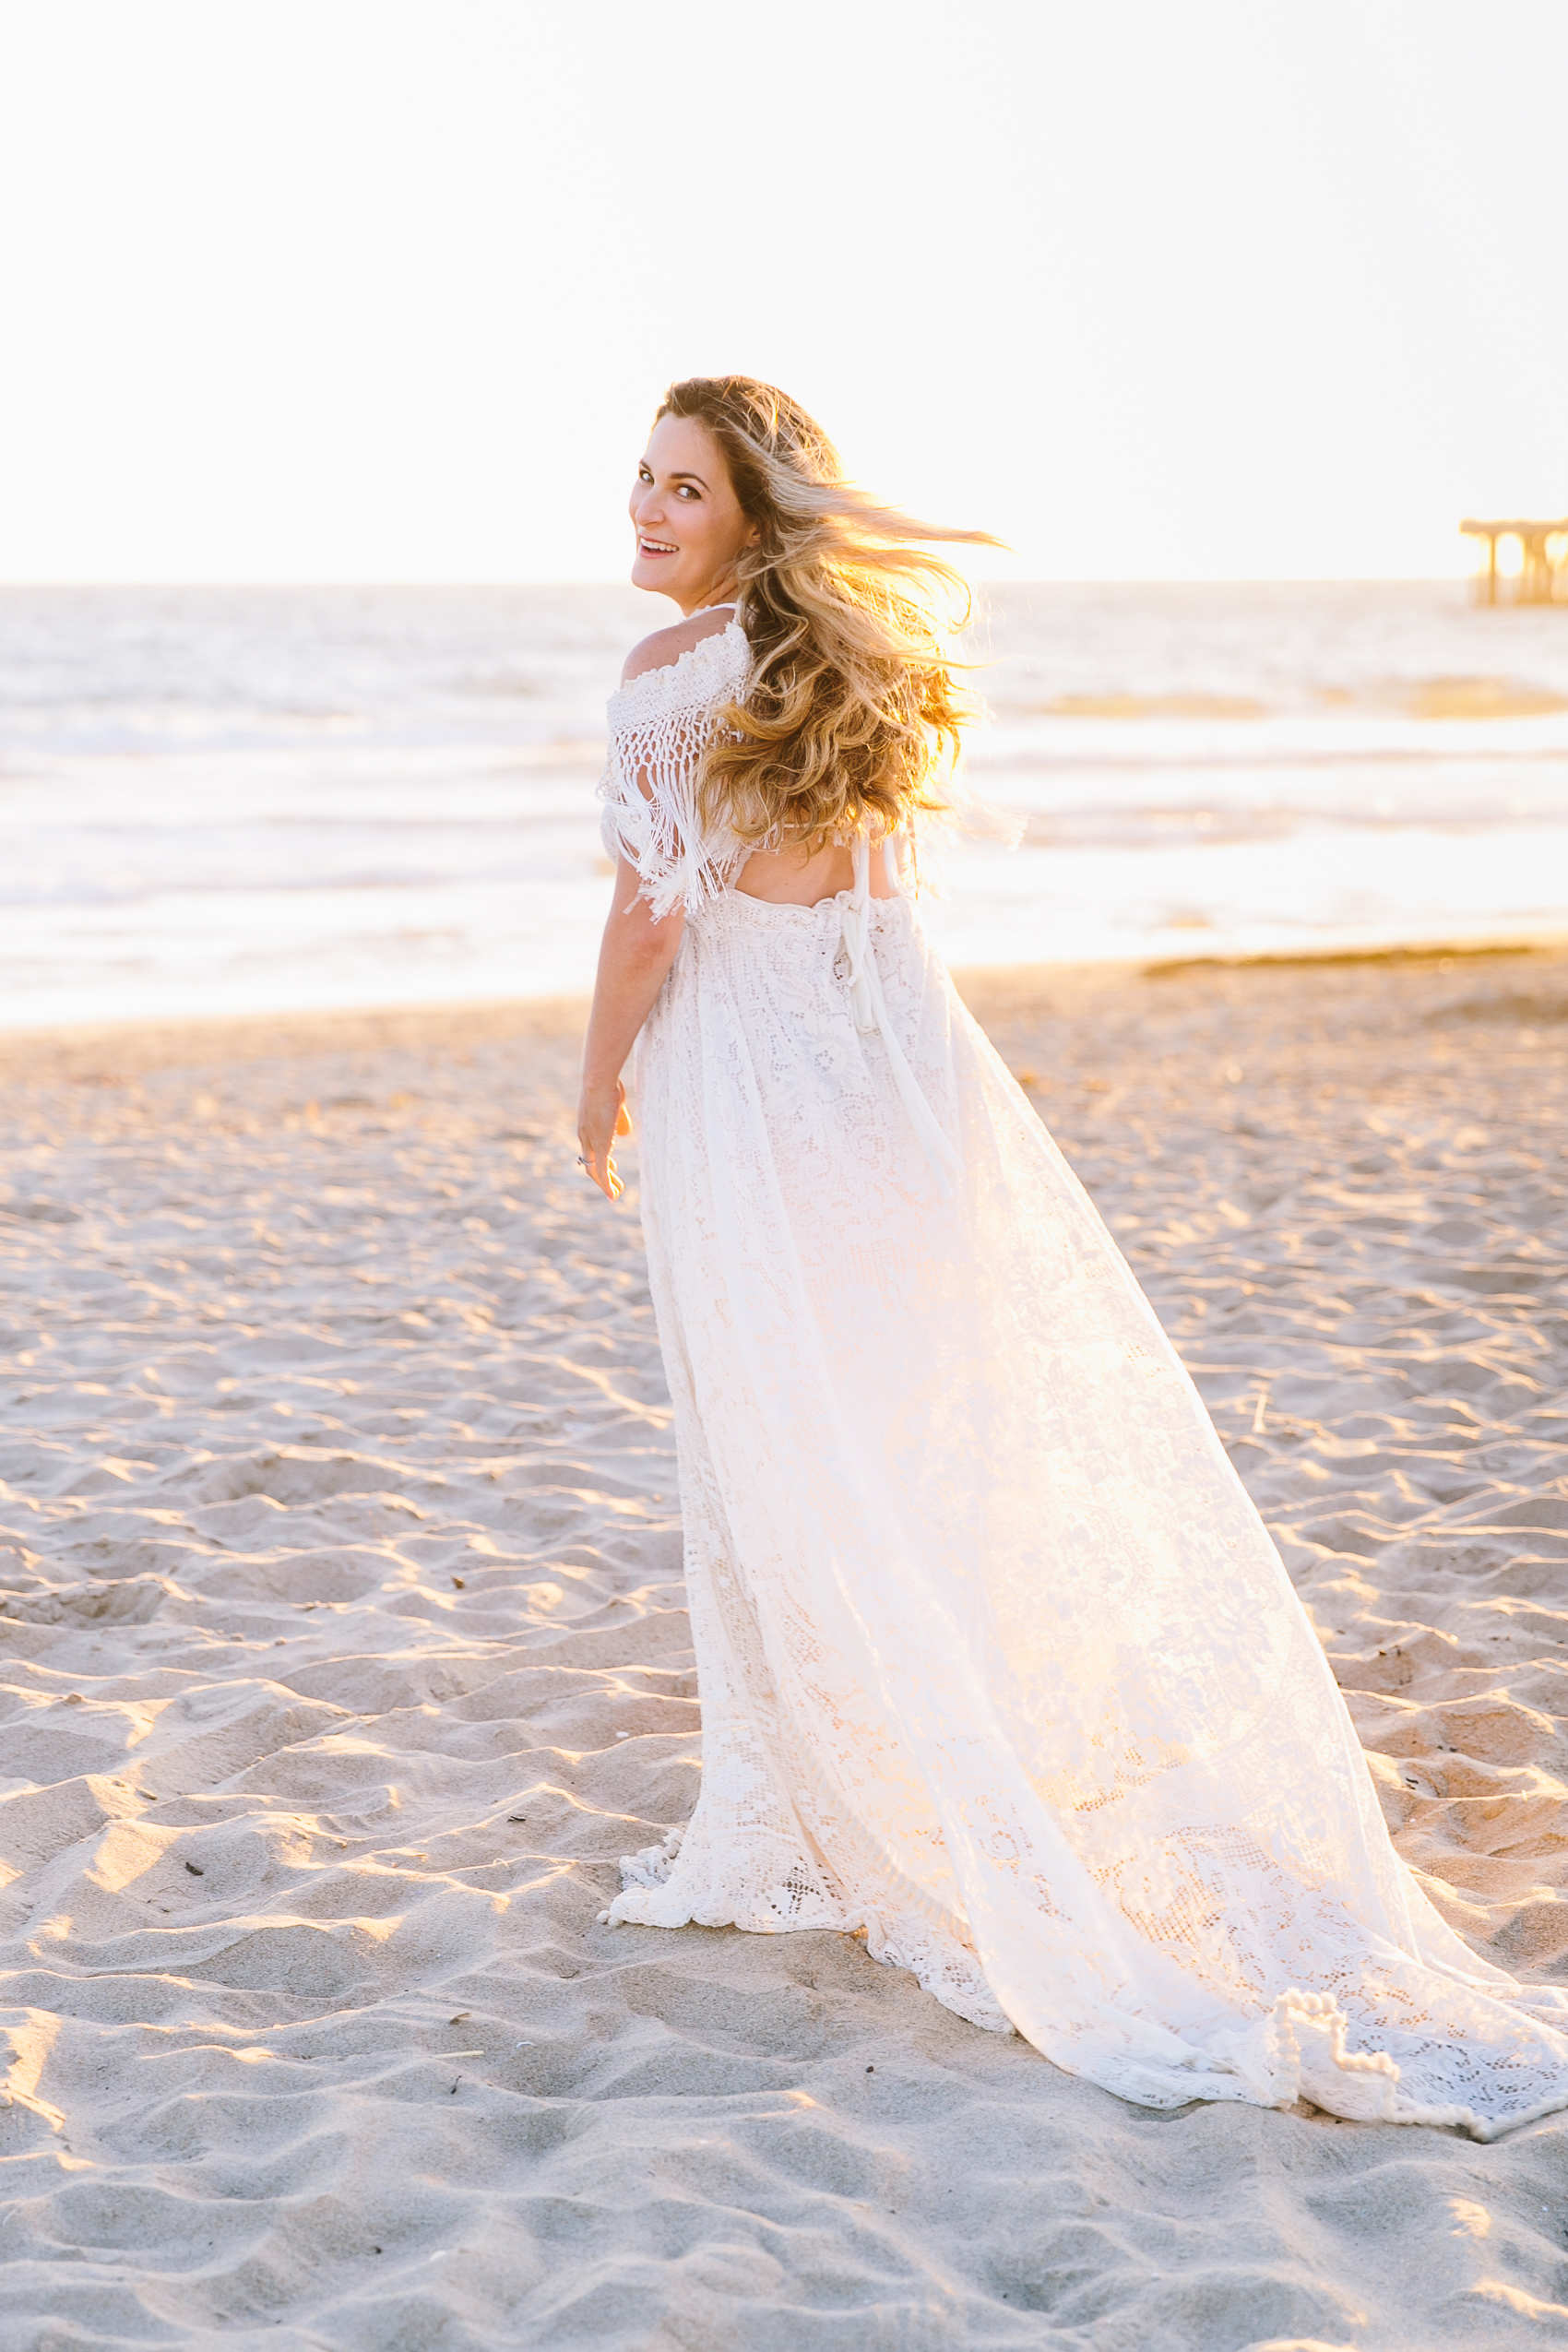 Los_Angeles_Family_Photographer_Maternity_Photos_Baby_Pregnancy_Venice_Beach_Golden_Hour-1003.jpg